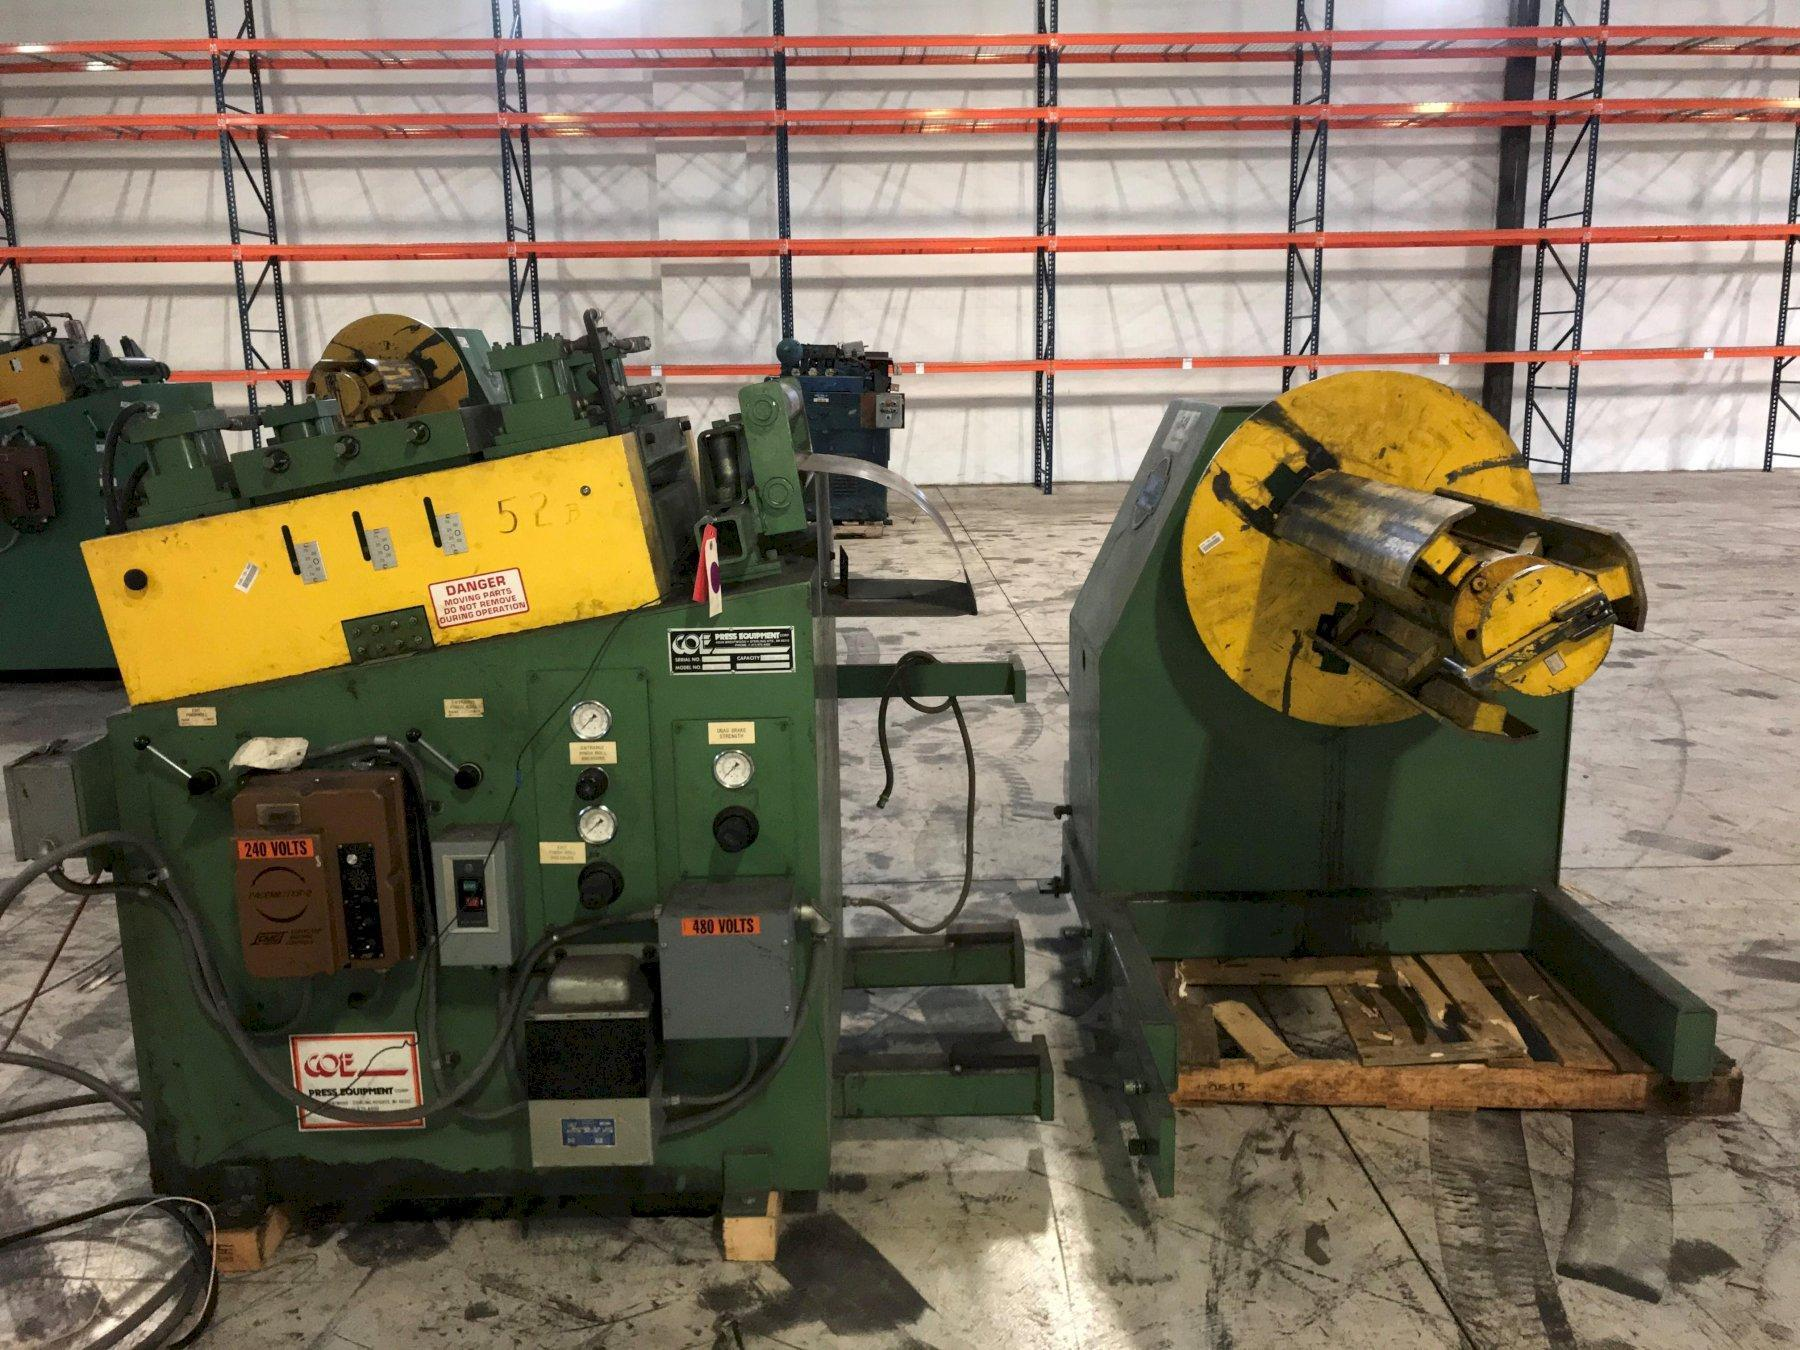 Coe Press Coil Reel Uncoiler and Powered Coil Straightener 8,000 Lbs.